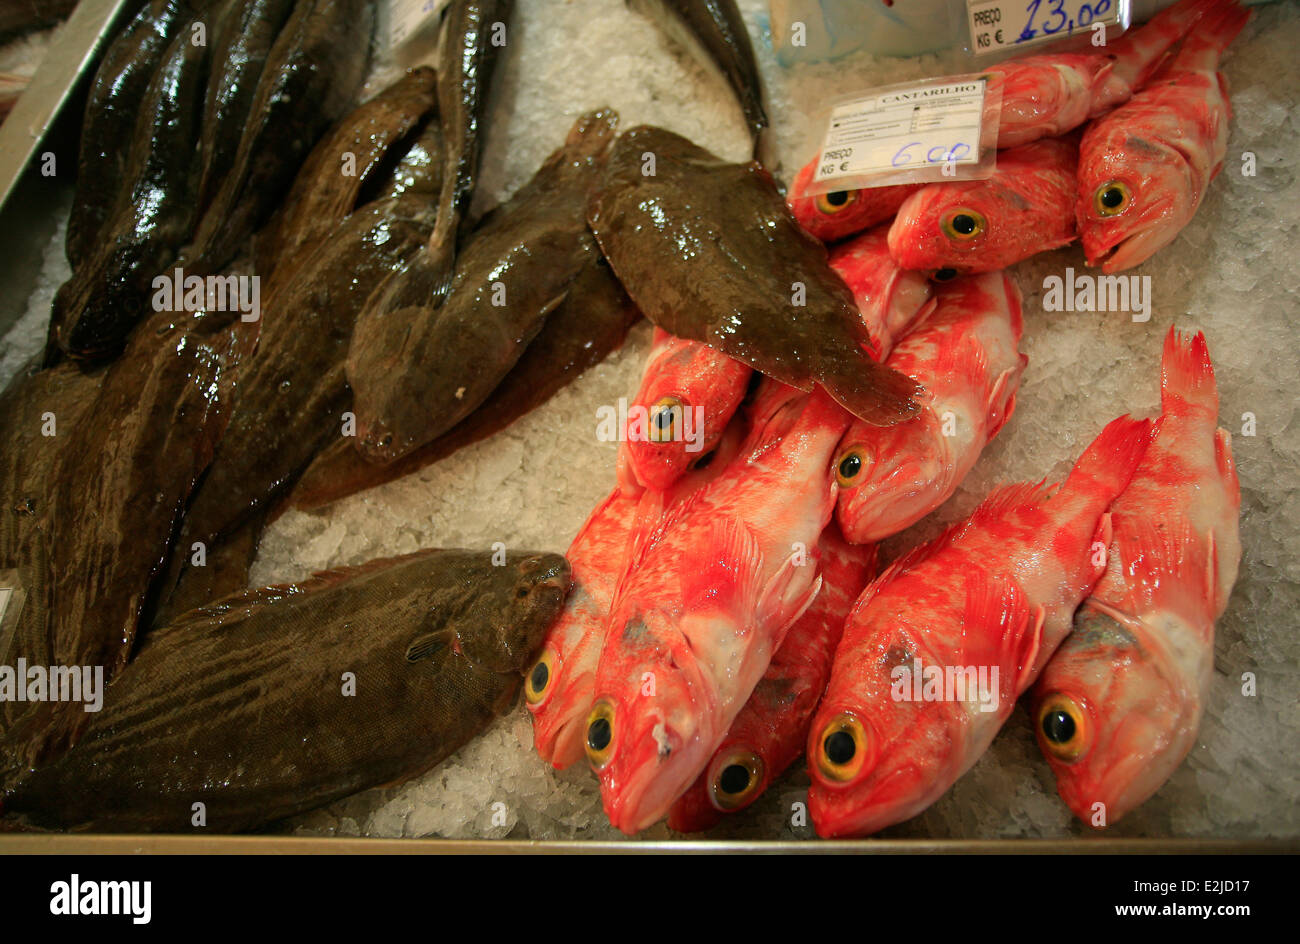 Red Mullet and Sole on ice. - Stock Image